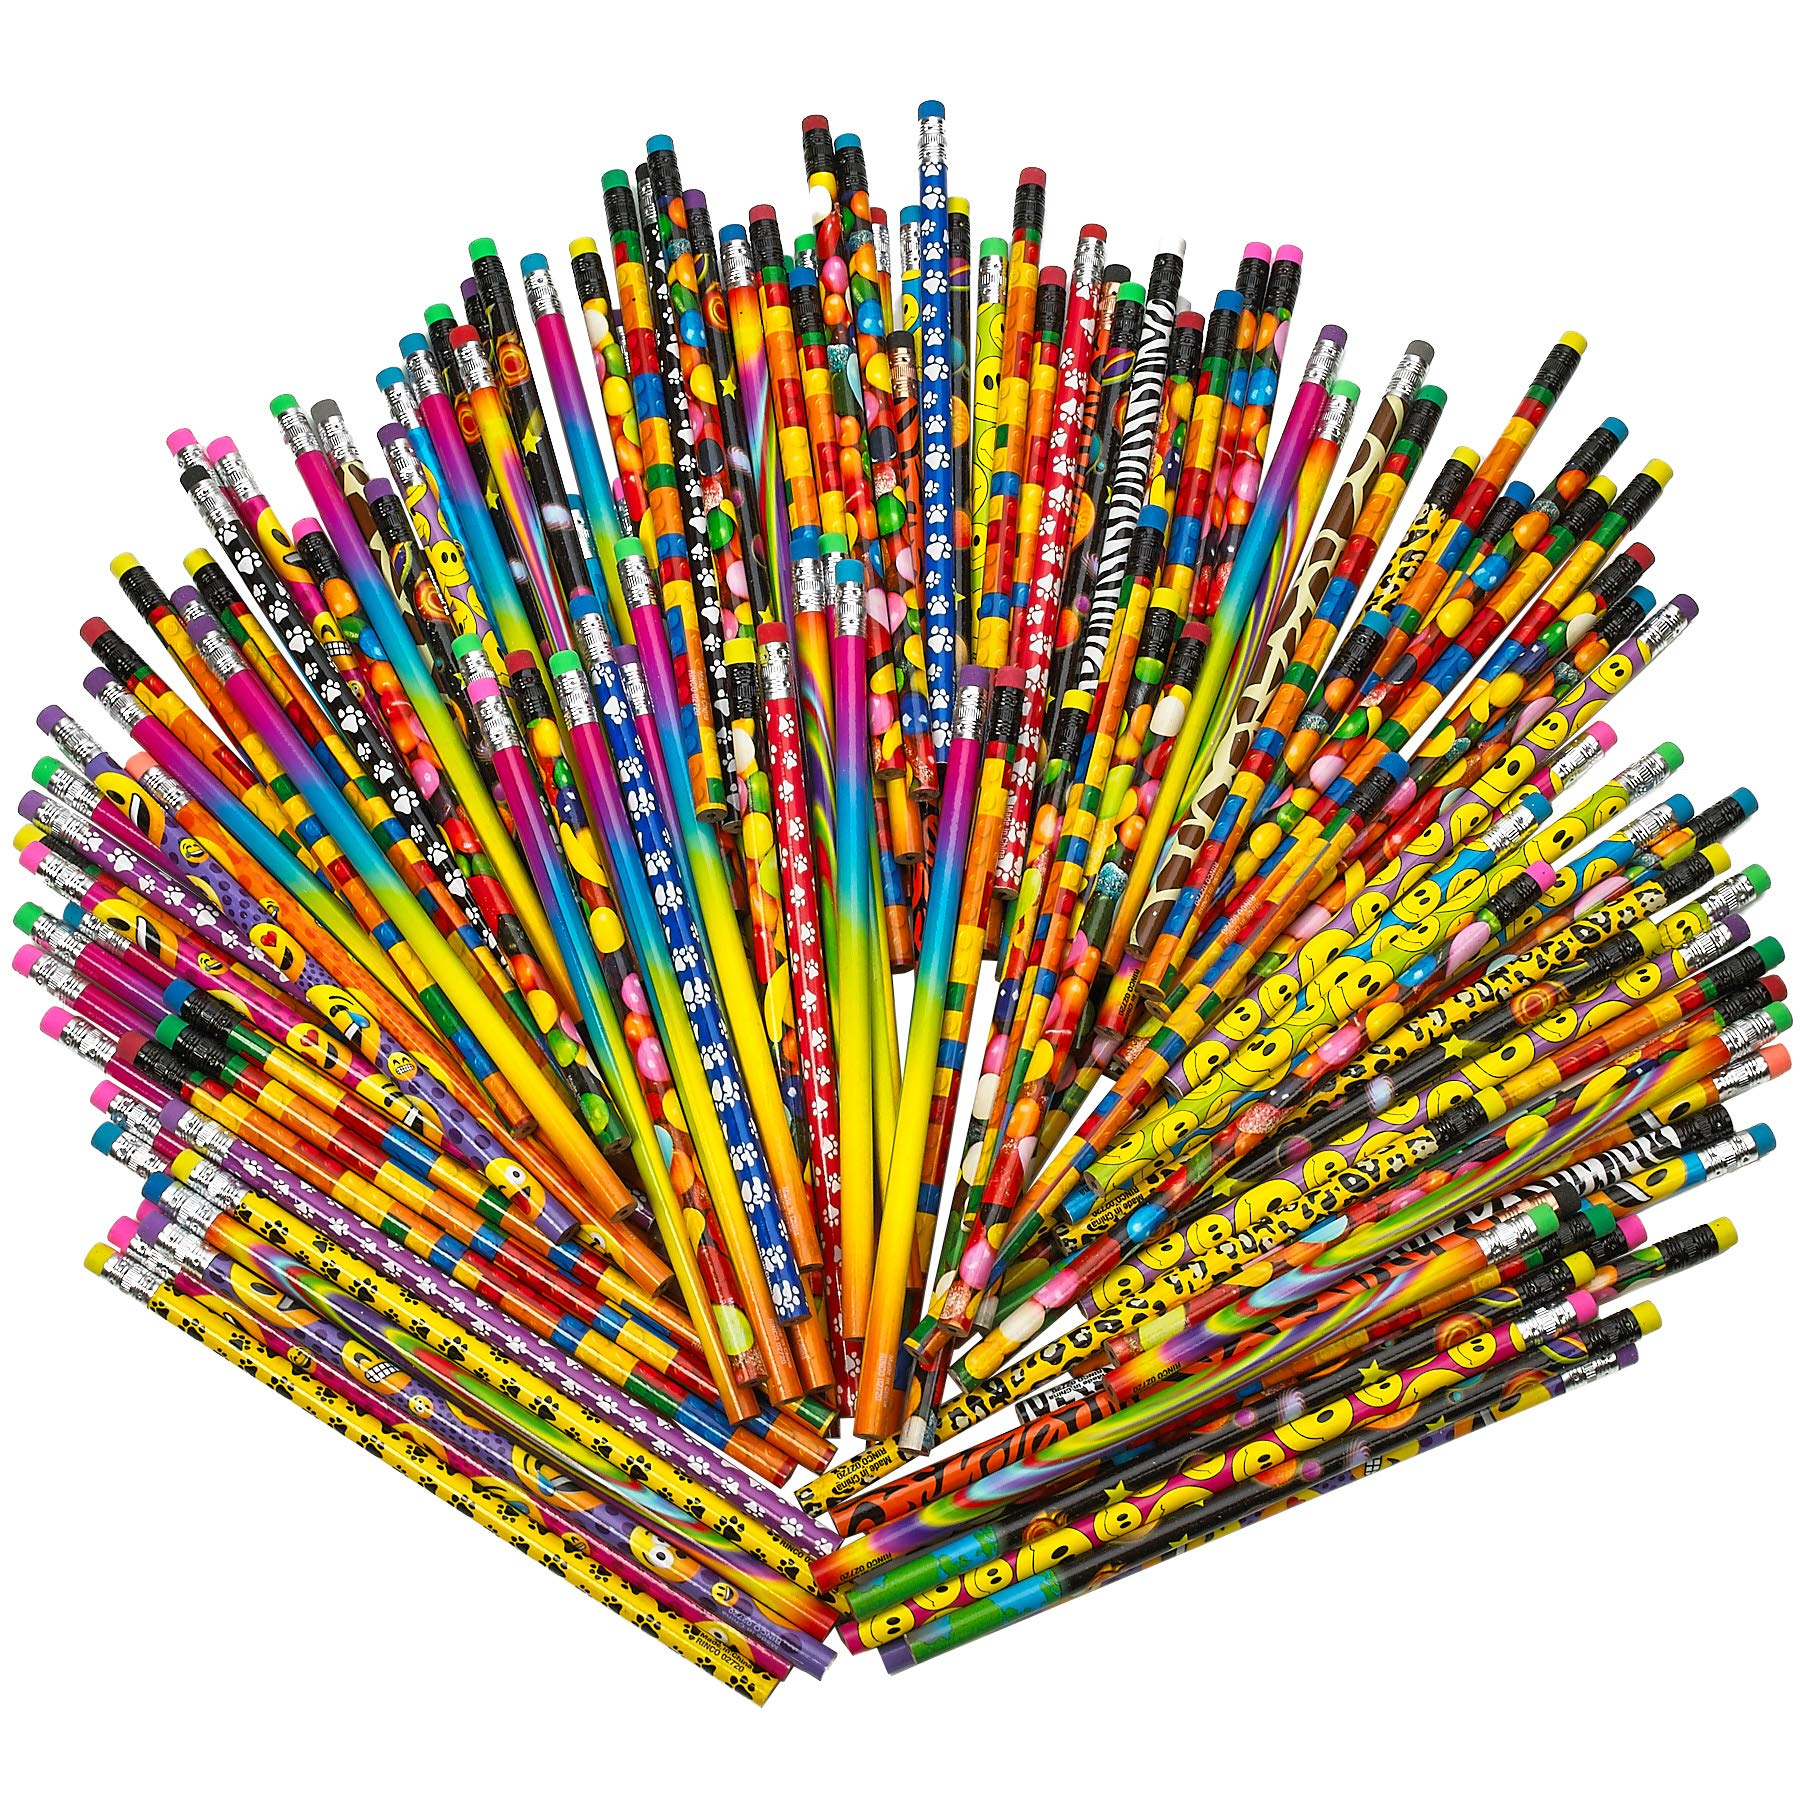 Kicko Pencil Assortment - 7.5 inches Assorted Colorful Pencils for Kids - Pack of 144 - Exciting School Supplies, Awards and Incentives by Kicko